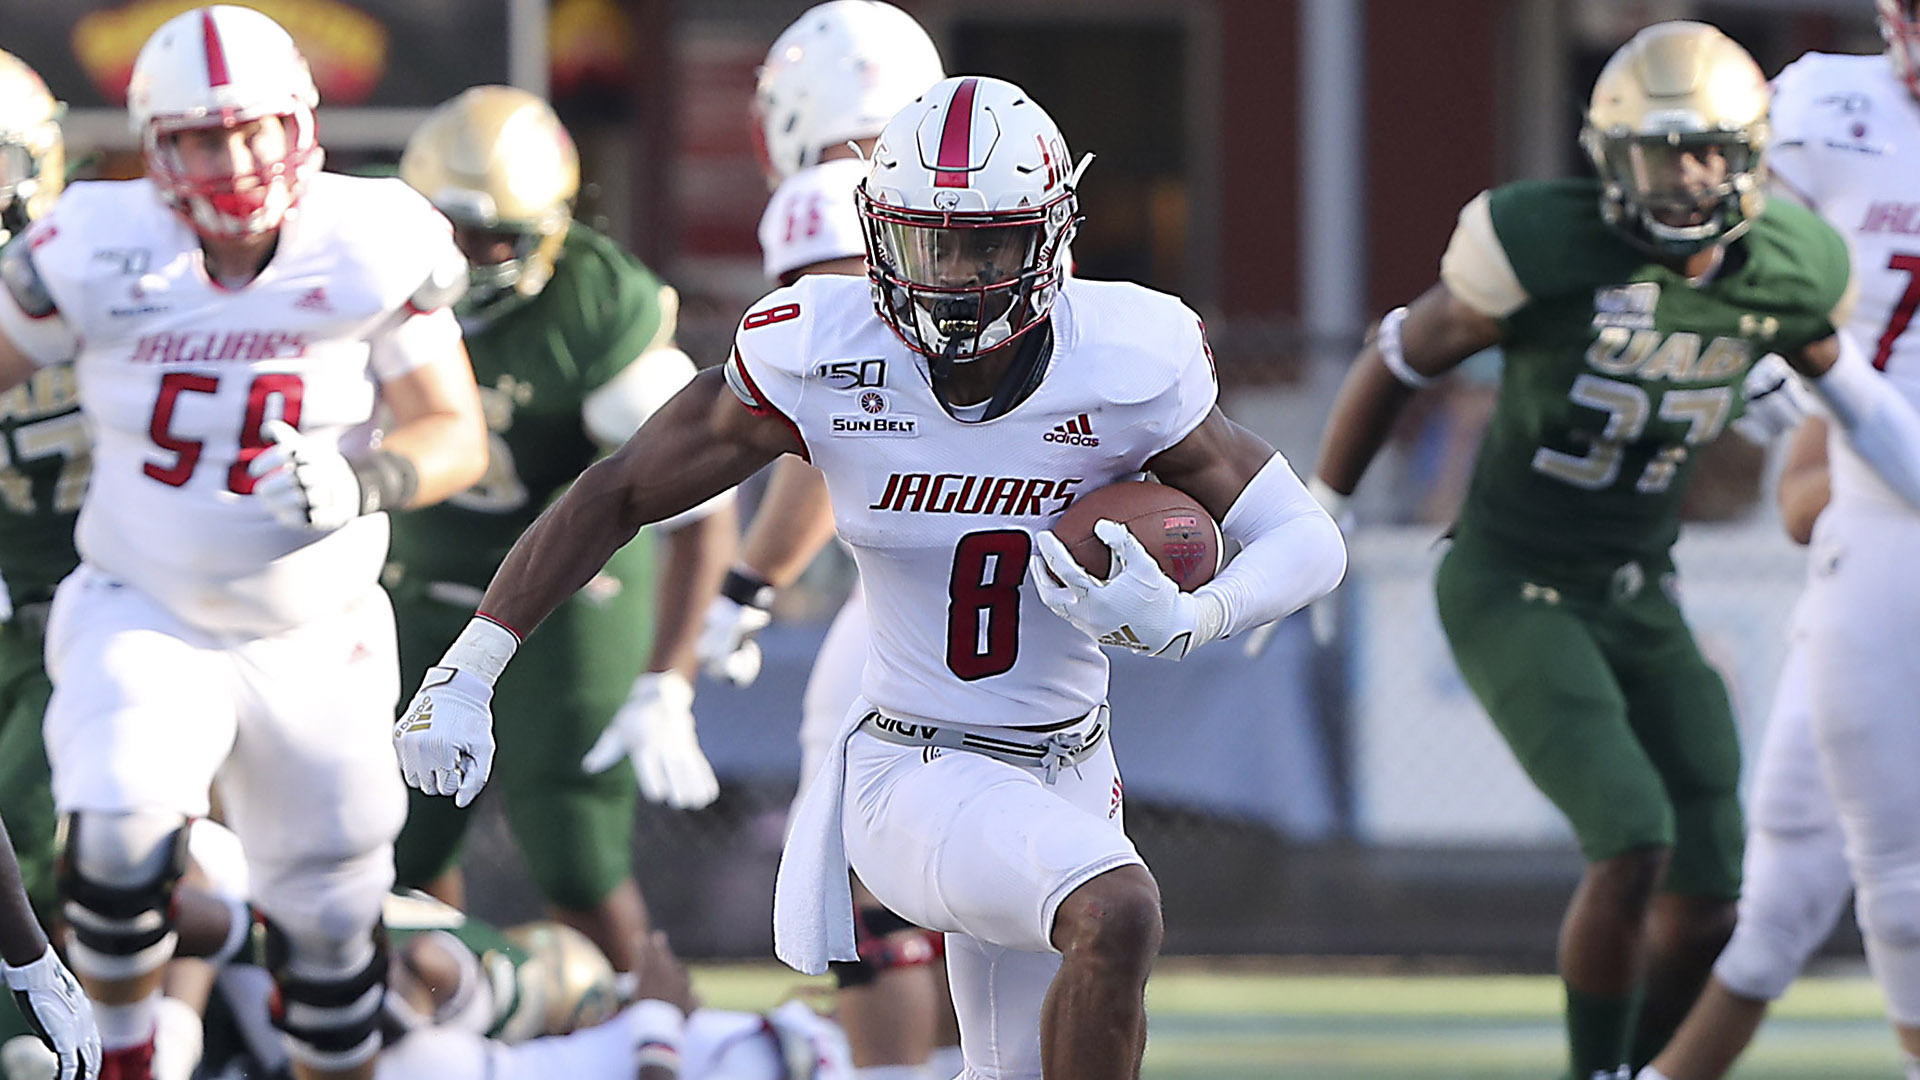 LISTEN: Jalen Tolbert, South Alabama star wide receiver, tells you what to expect from the Jags and their new coaching staff